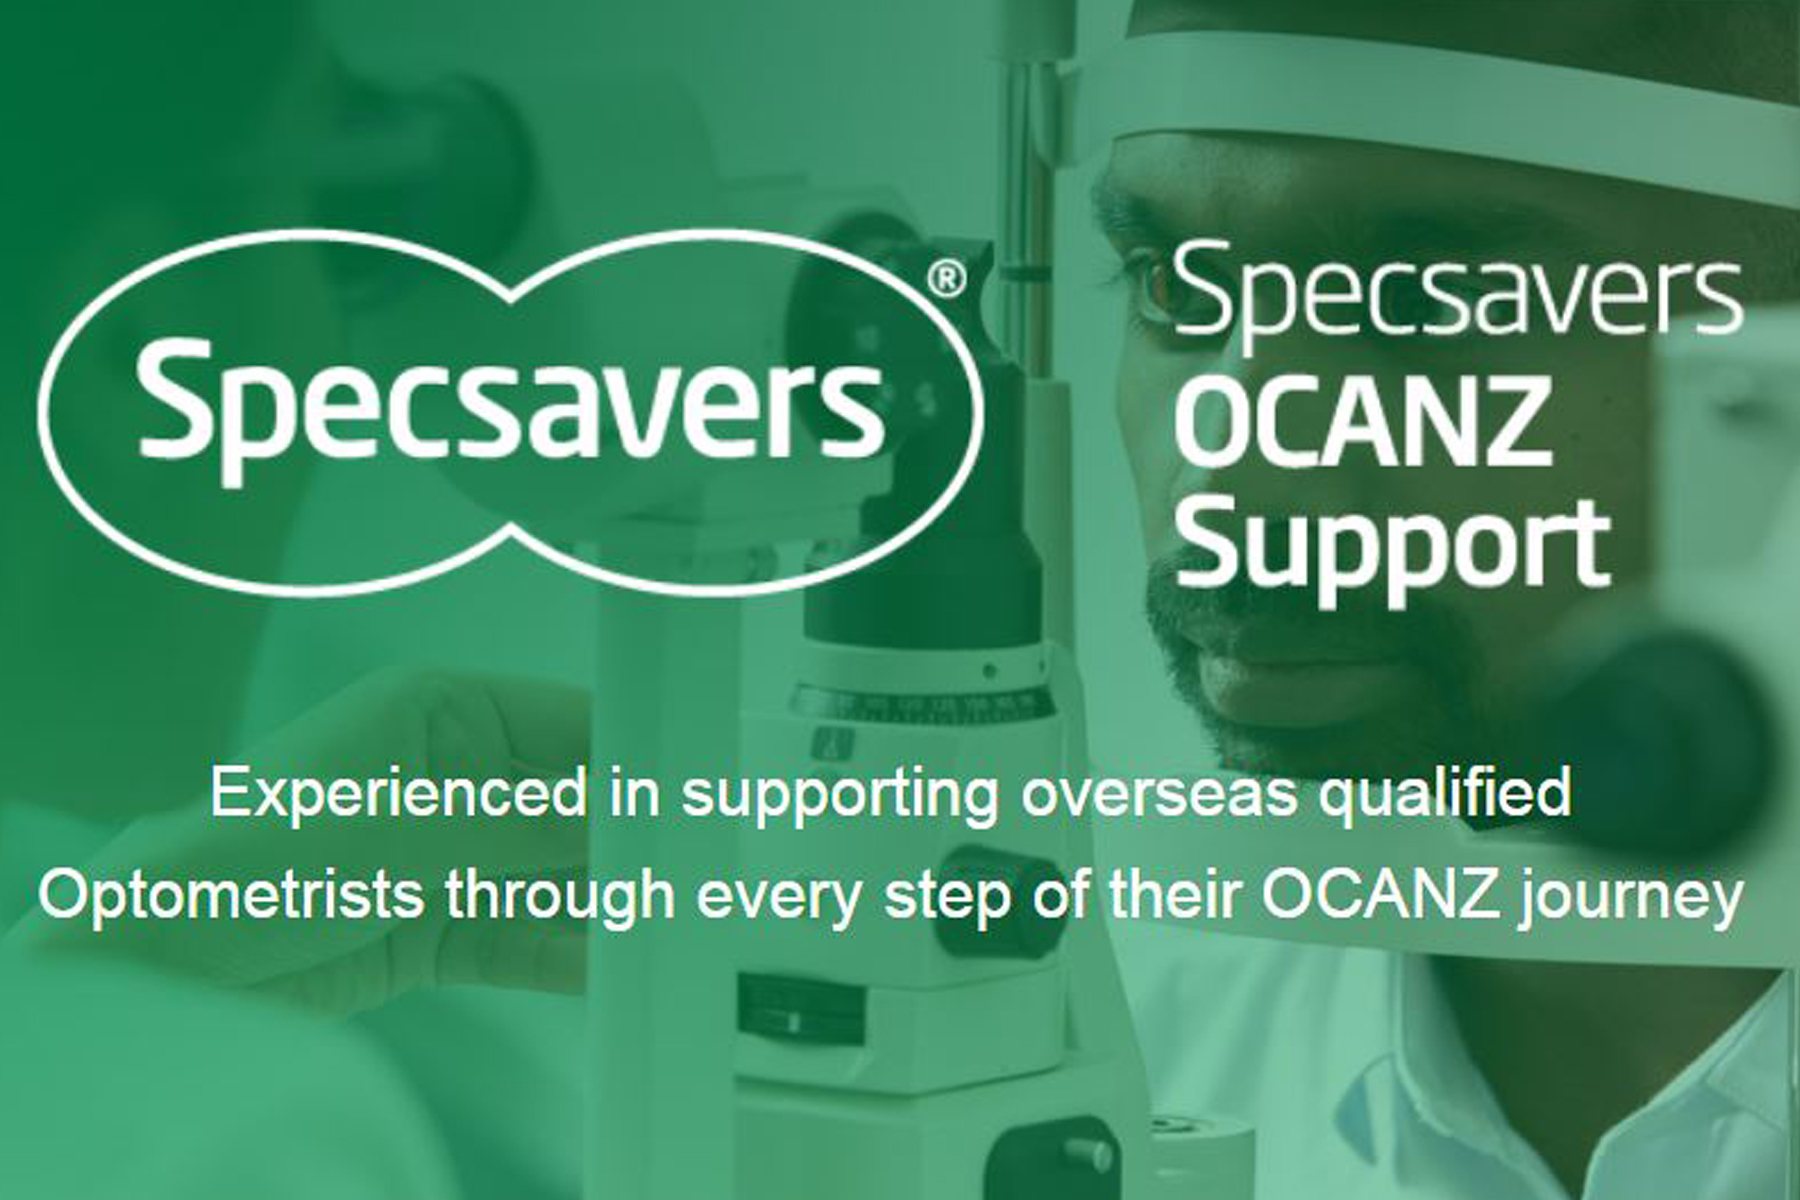 Specsavers OCANZ Support